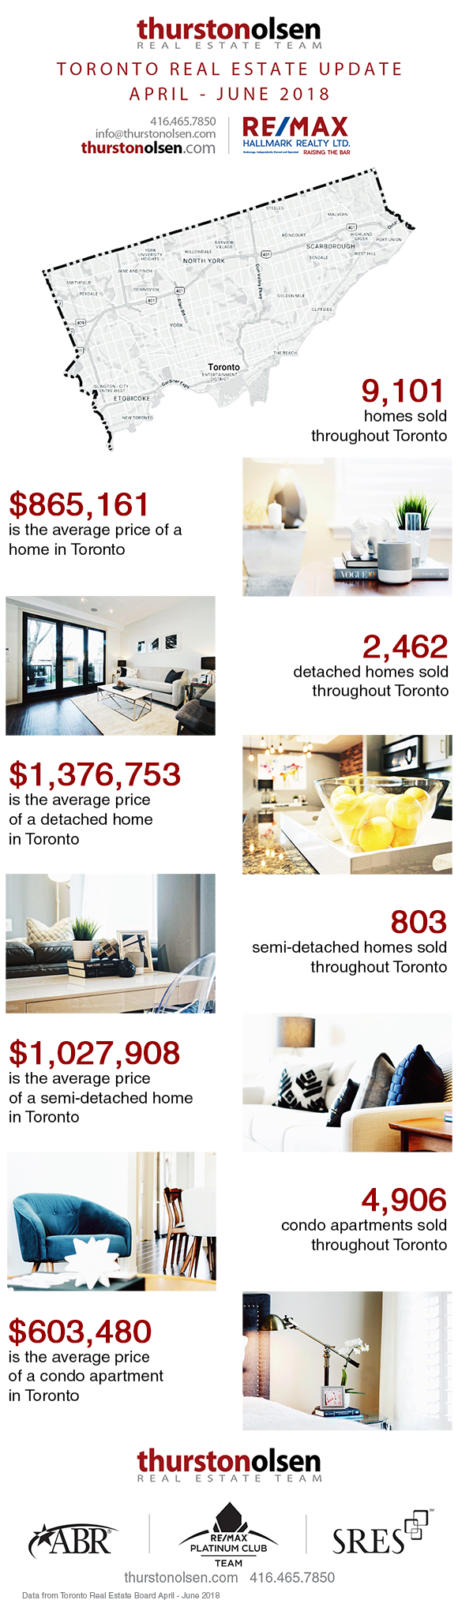 Toronto real estate update April - June 2018 Q2